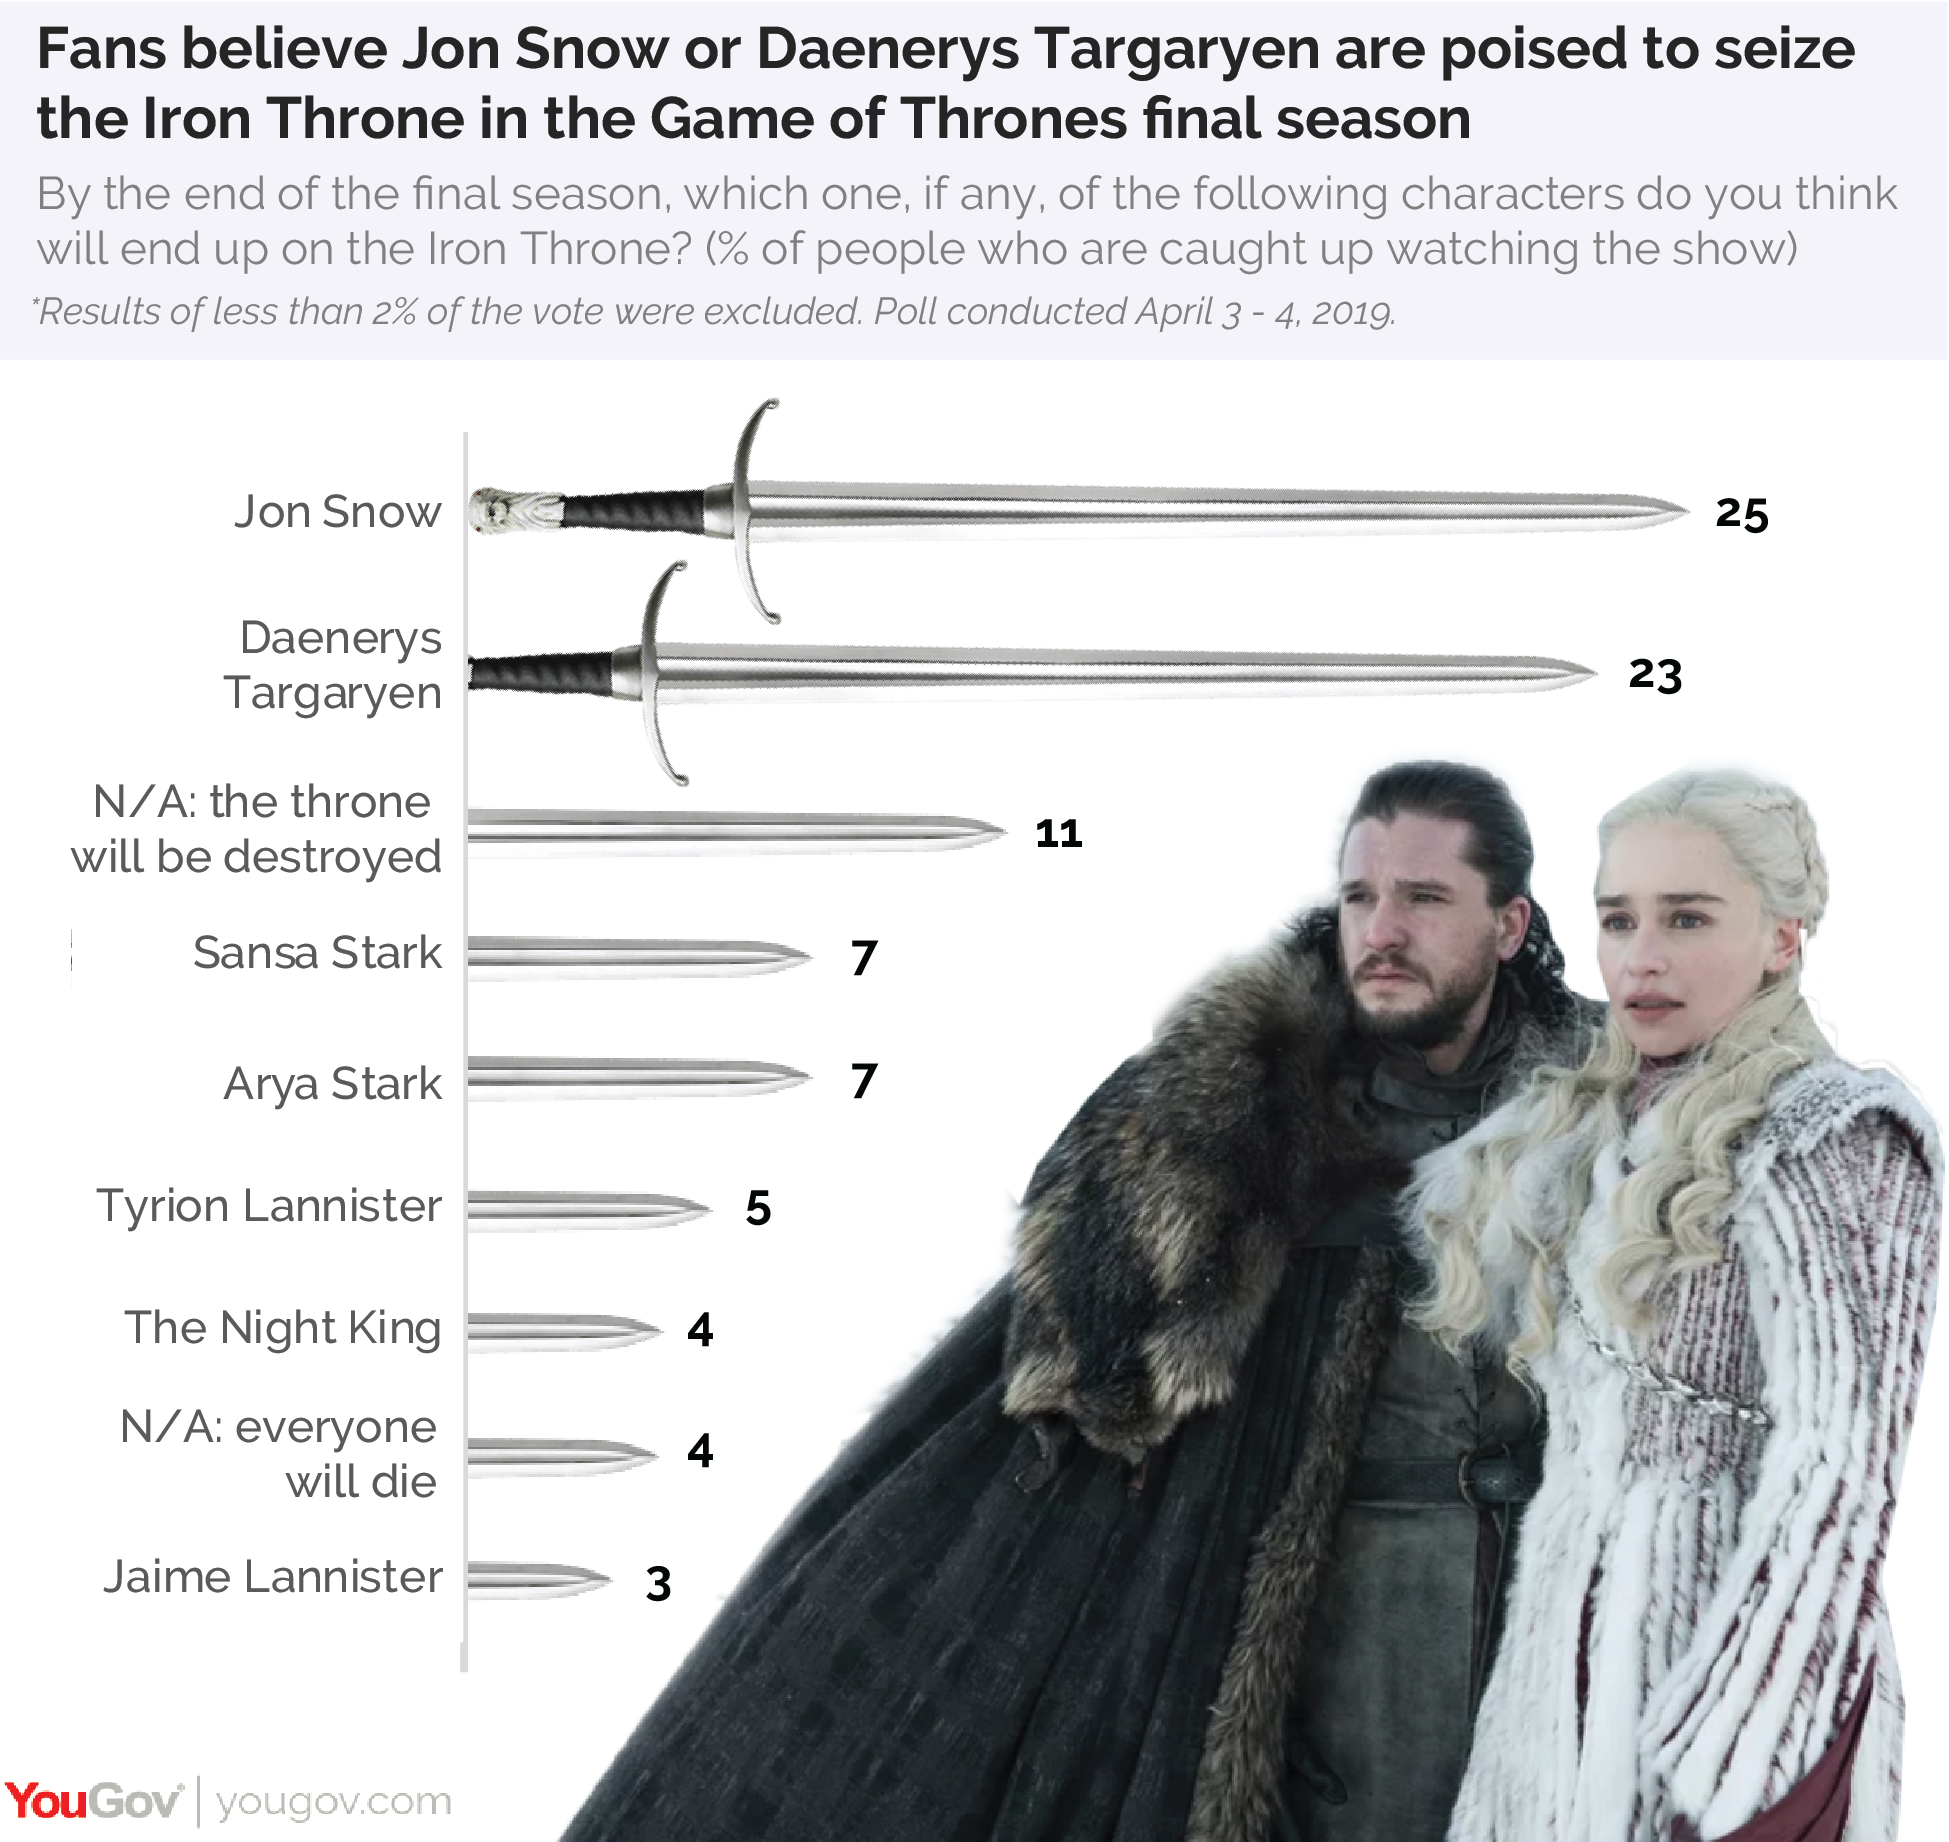 Fans believe Jon Snow or Daenerys Targaryen are poised to seize the Iron Throne in the Game of Thrones final season